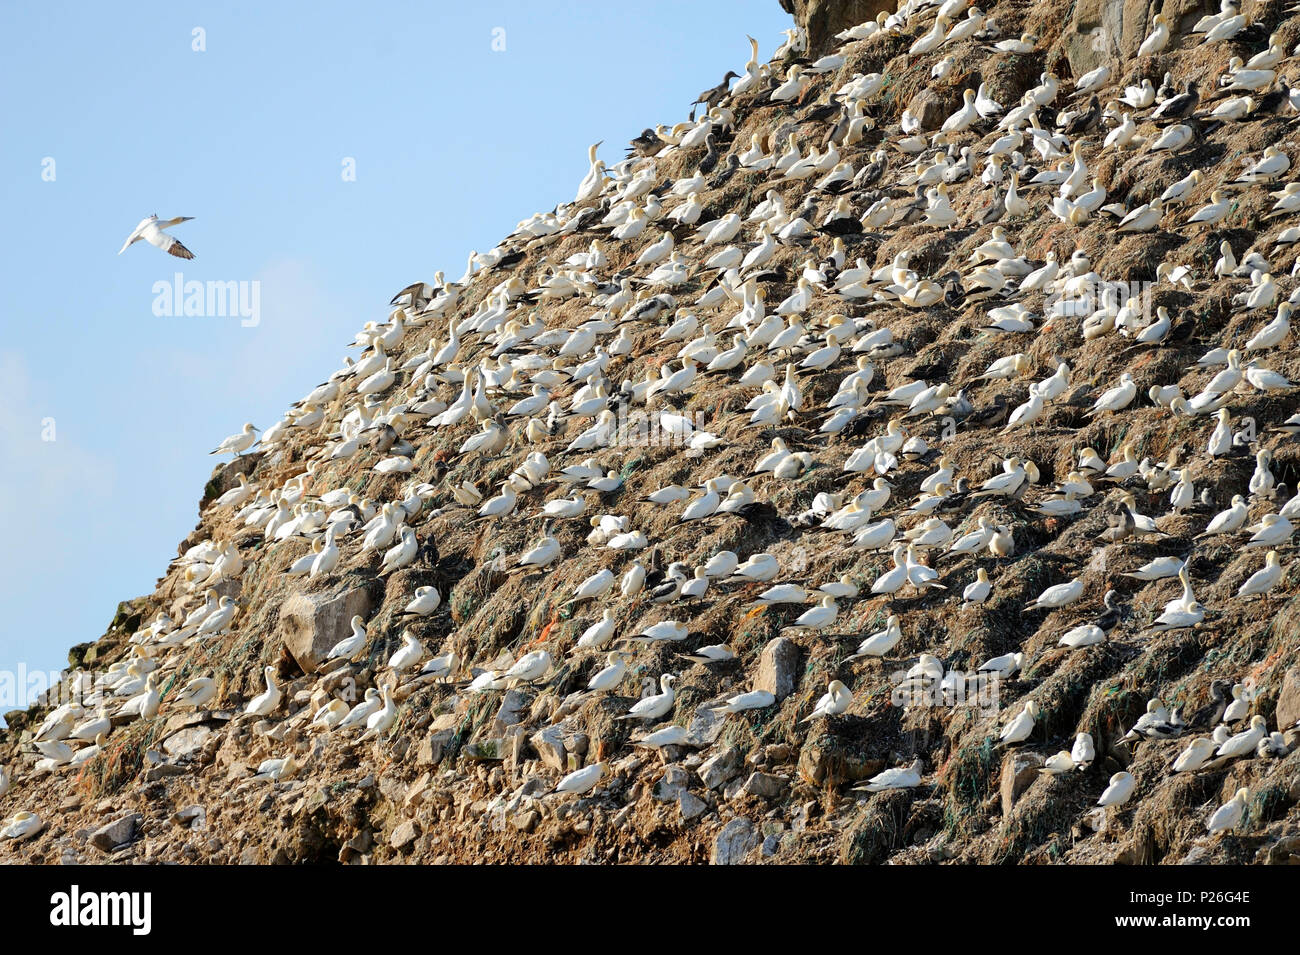 Ile Rou, Reserve Naturel des sept-iles, Brittany, France. Colony of northern gannet. - Stock Image